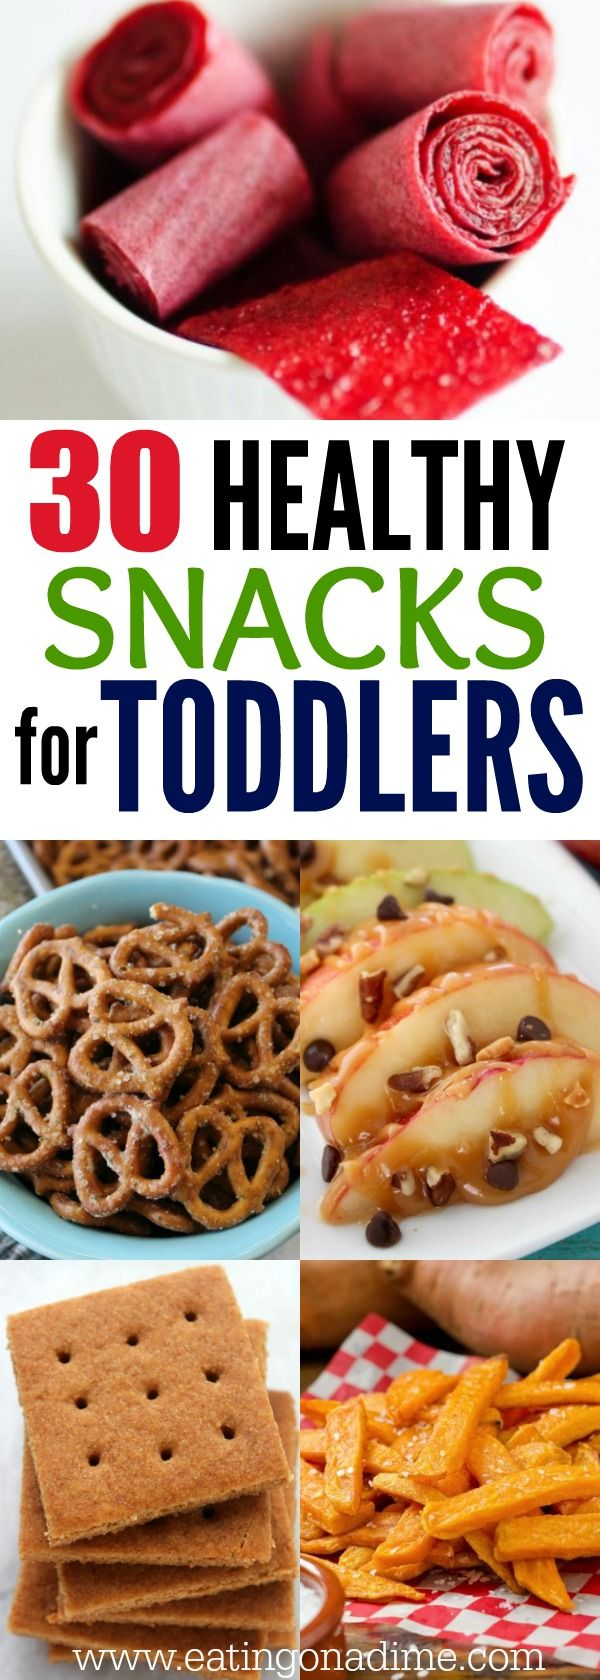 We have tons of healthy snacks for toddlers they will actually eat! Find 30 recipes that toddlers will love.They are budget friendly and easy to make!